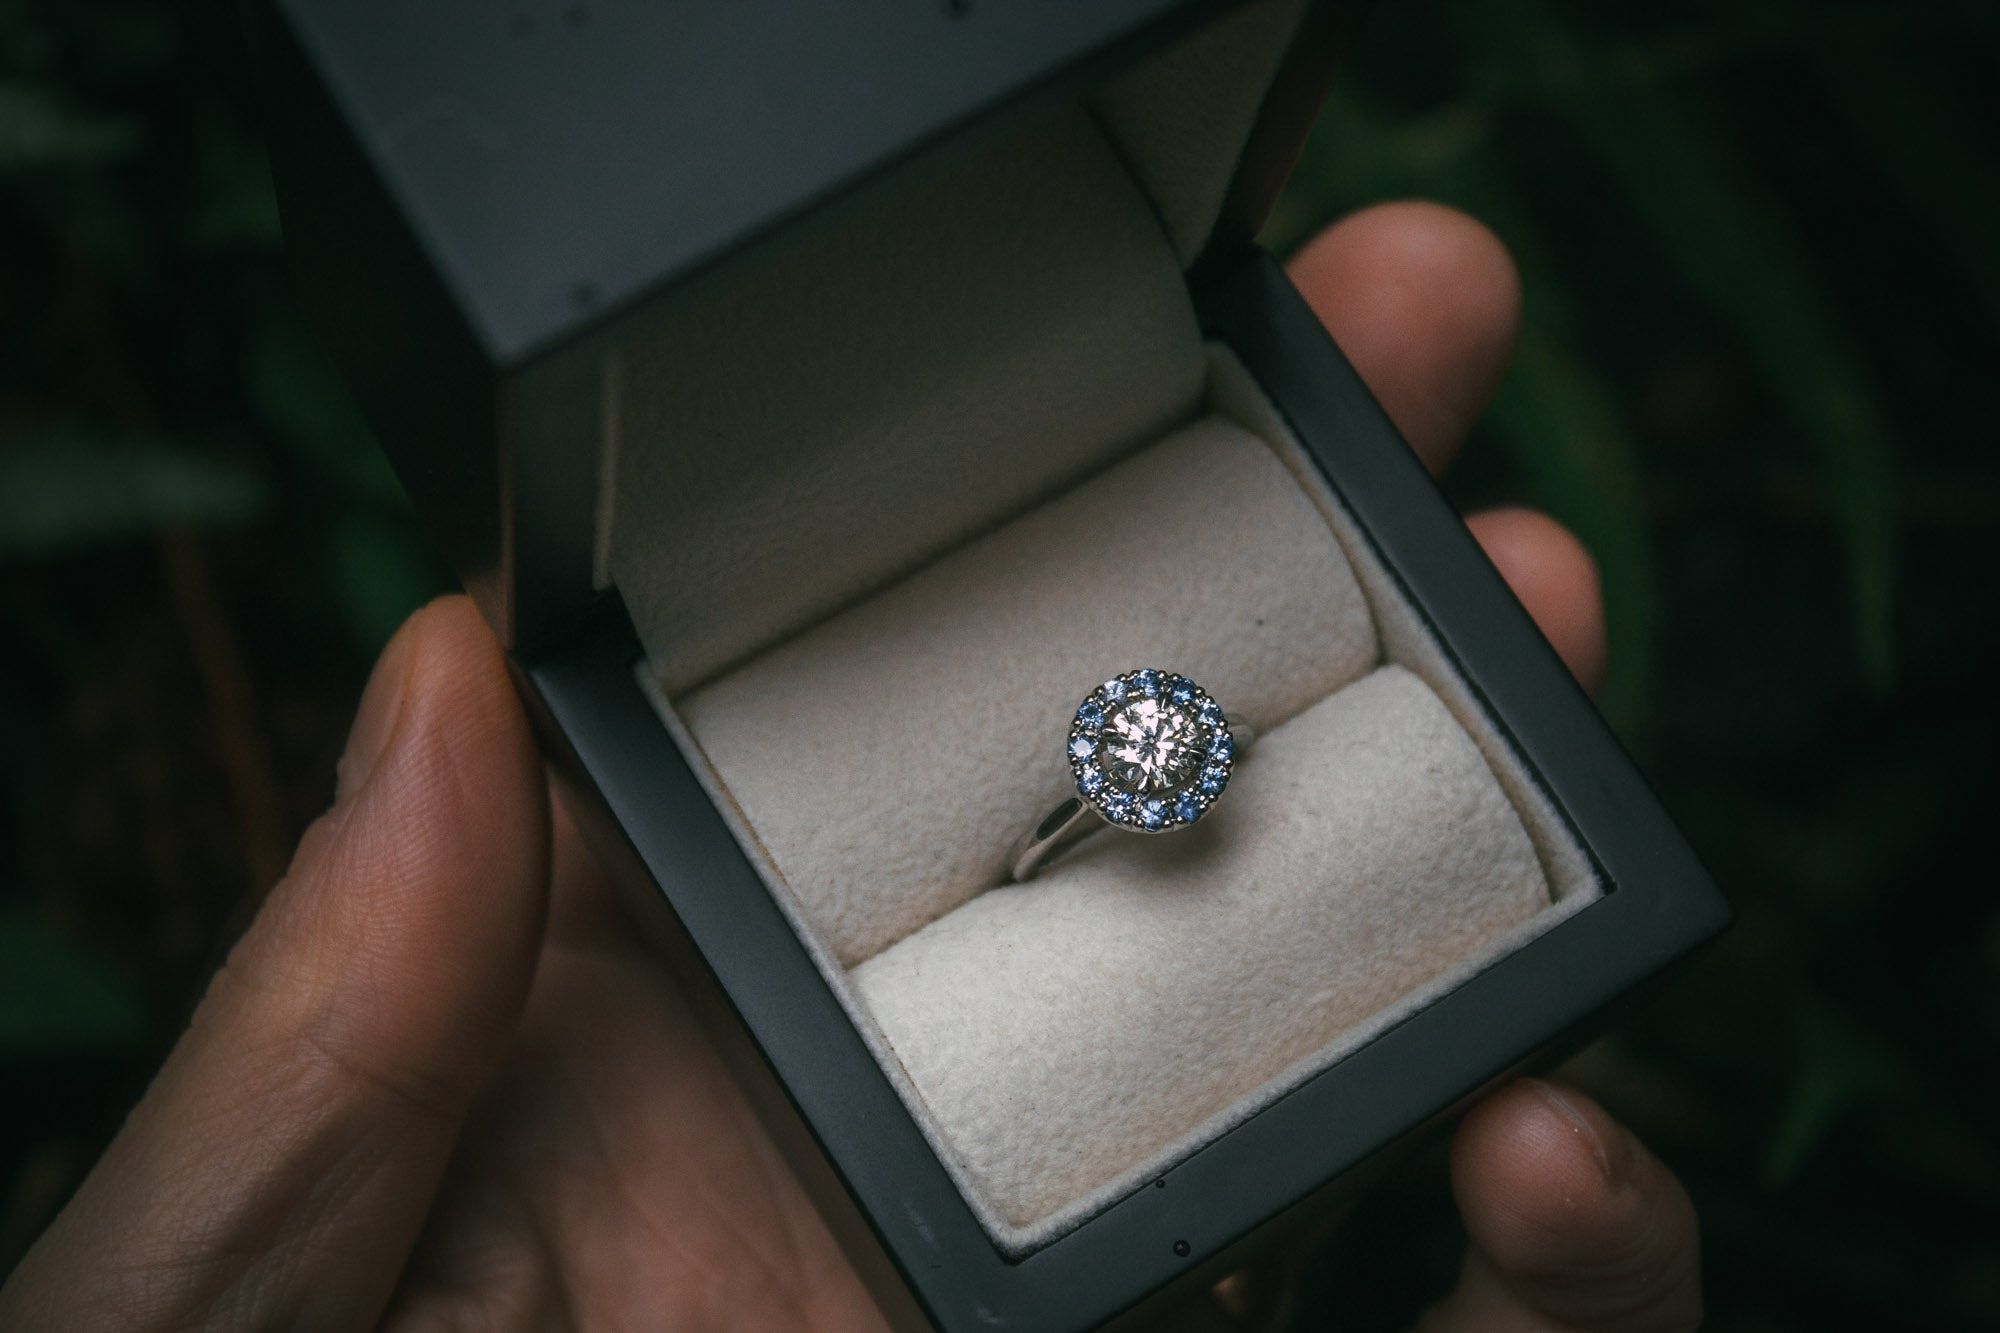 Bespoke Diamond Engagement Ring with Sapphire Halo in Edinburgh